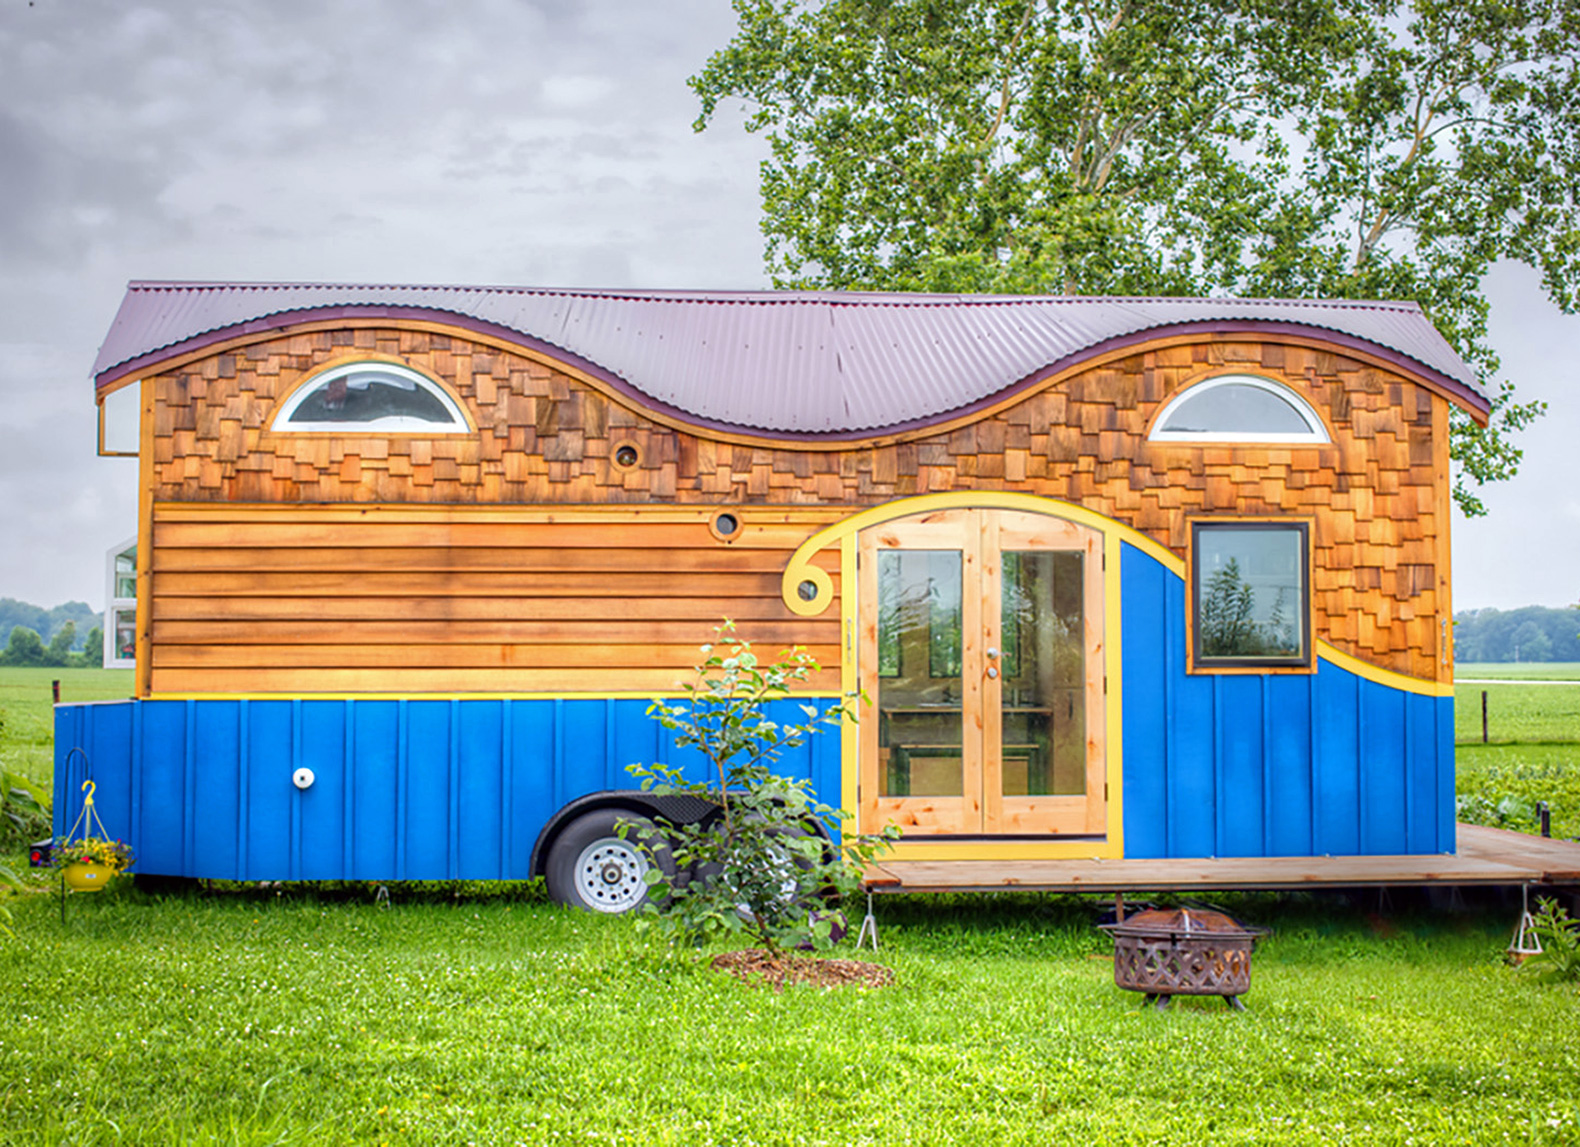 Amazing Wood Pequod Caravan Comfortably Fits A Family Of Four